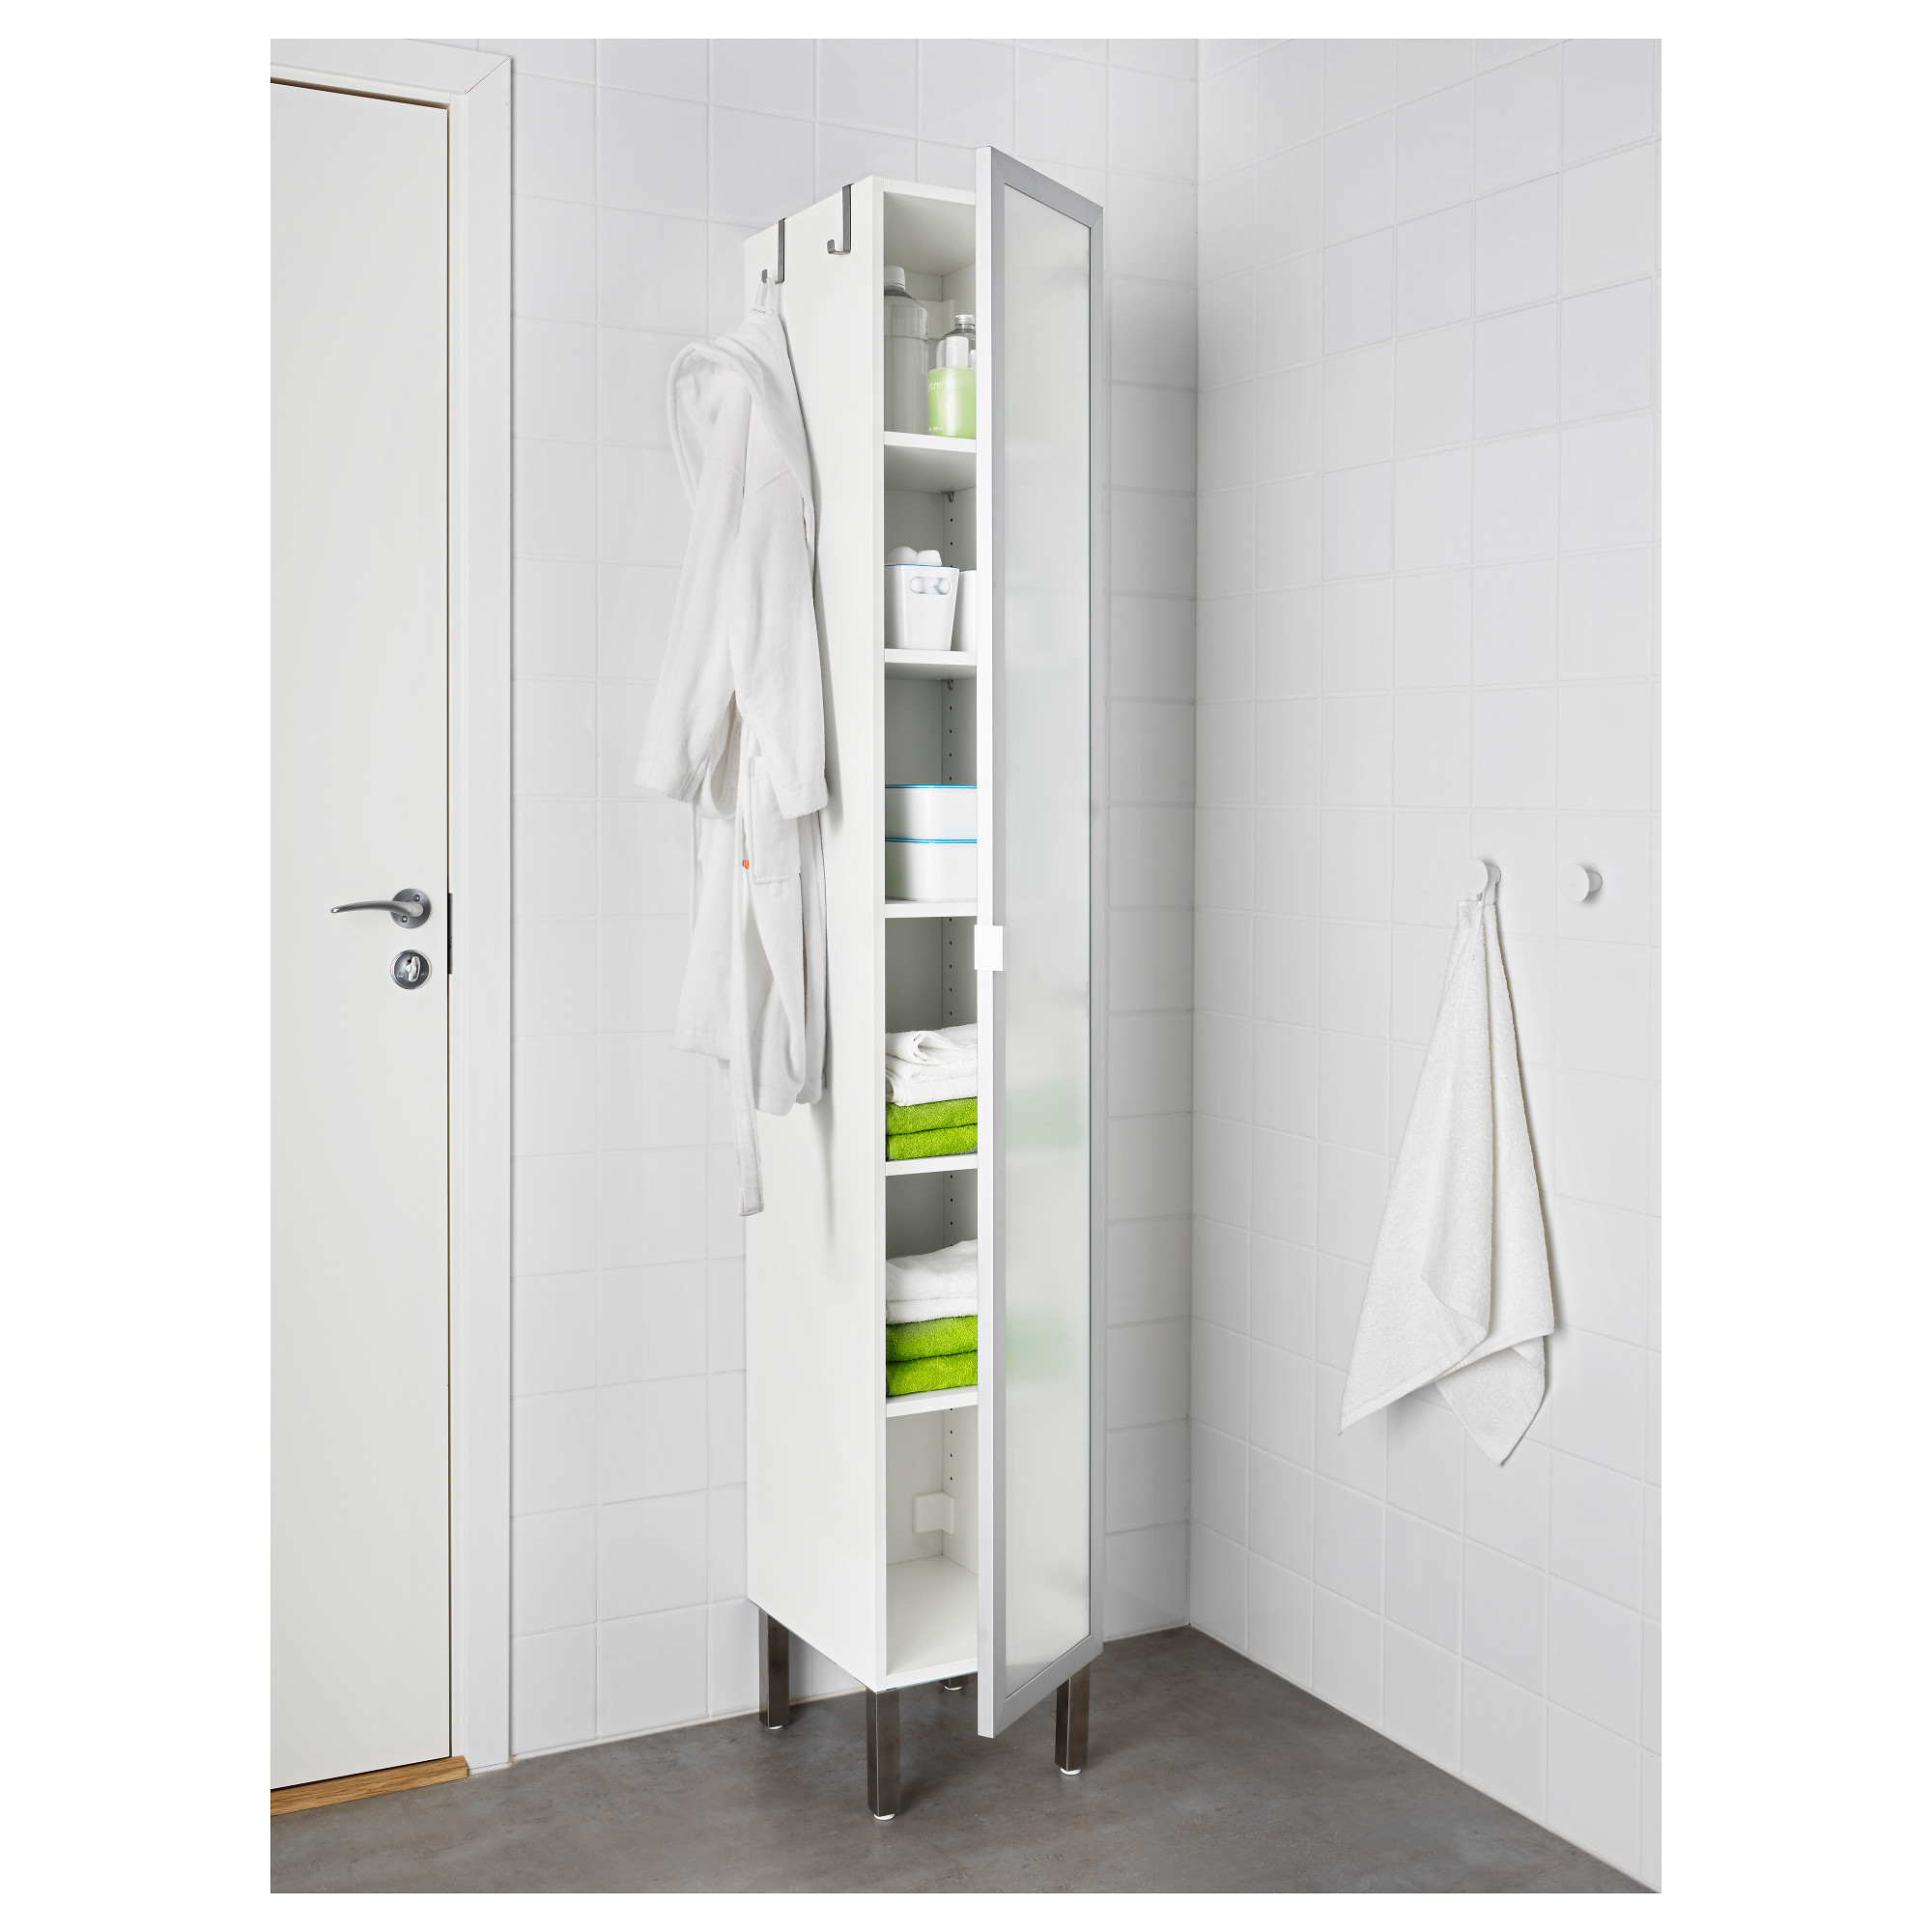 LillÅngen High Cabinet With 1 Door Stainless Steel White 30x38x194 Cm Ikea